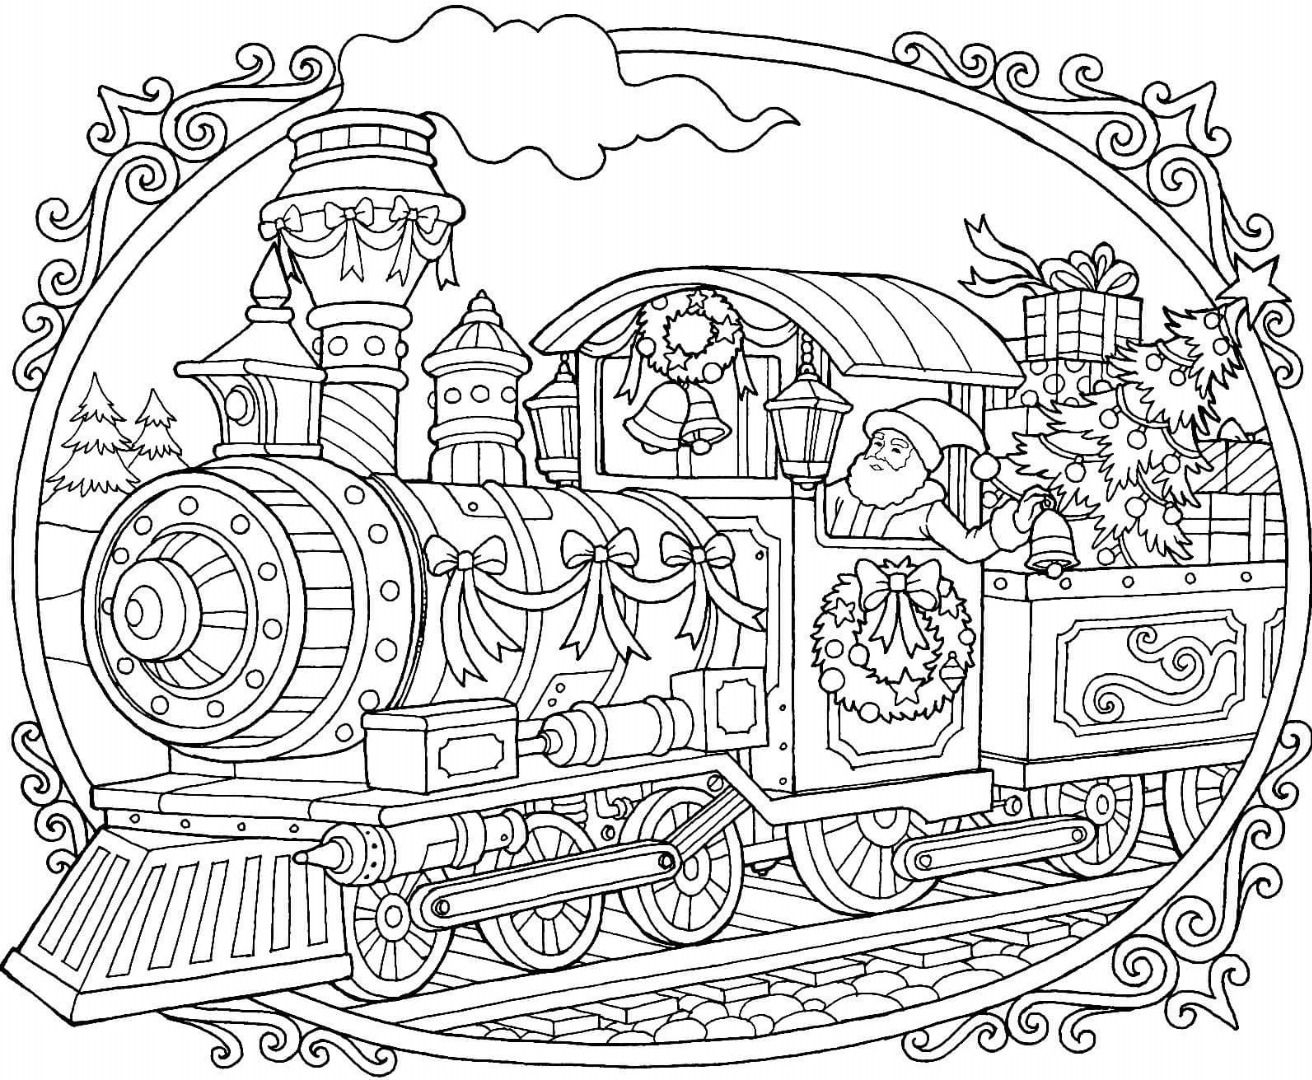 printable mary engelbreit coloring pages - photo#24